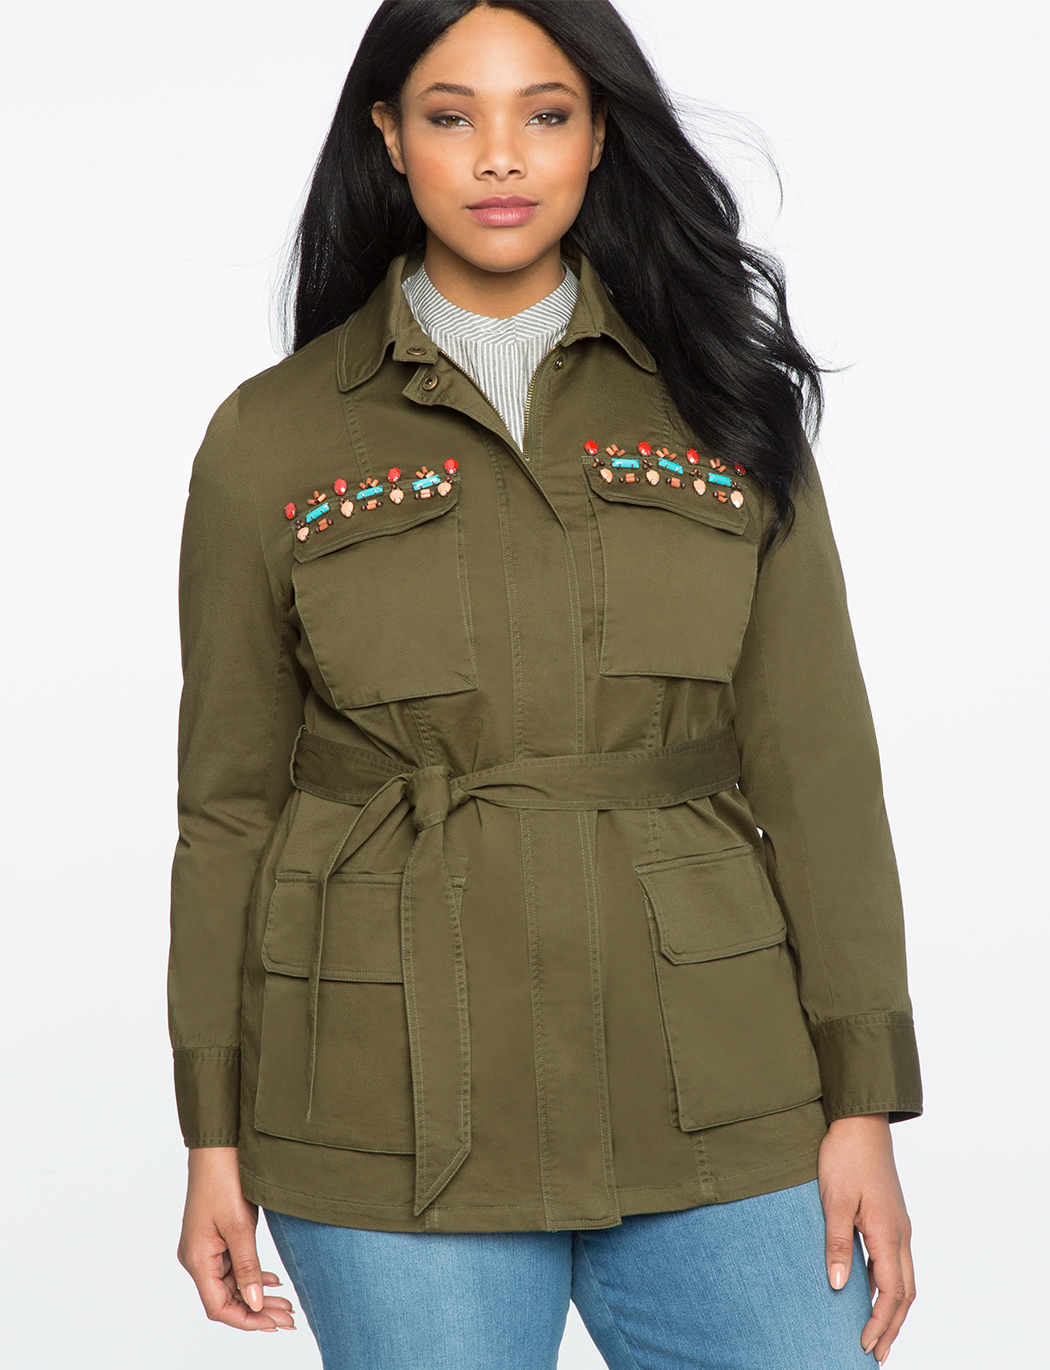 9d8b897ef Embellished Military Jacket | Women's Plus Size Coats + Jackets | ELOQUII